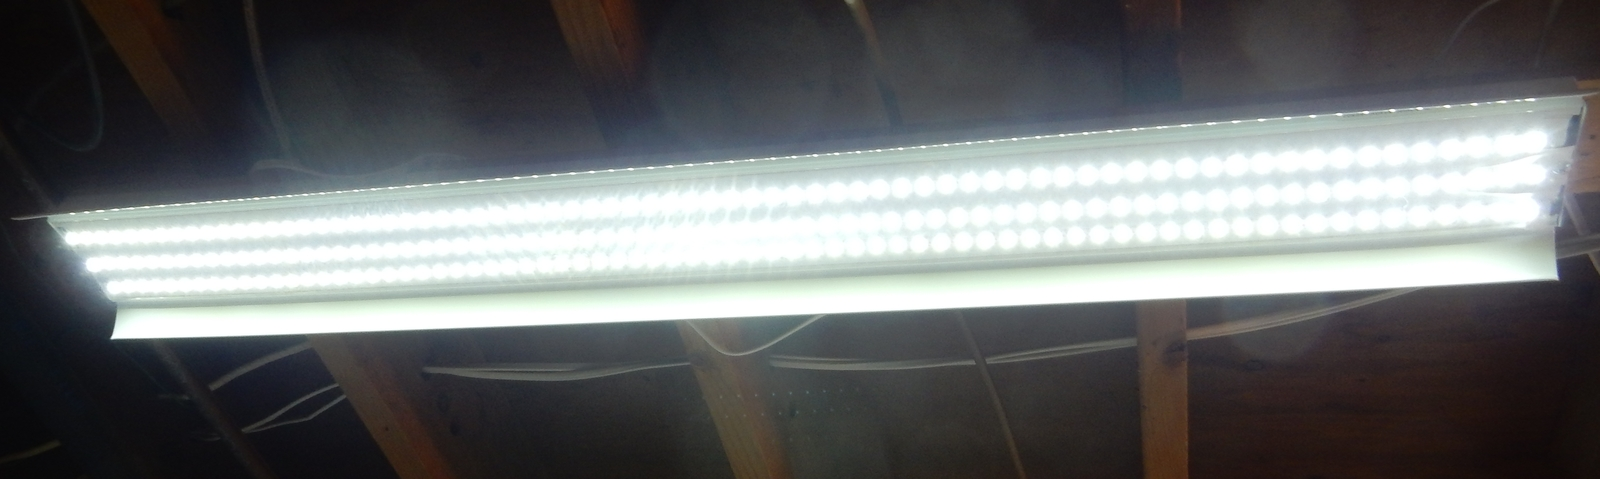 Kit: 60W Power Supply + 8' LED Strip, Warm White, Florescent Tube Retrofit